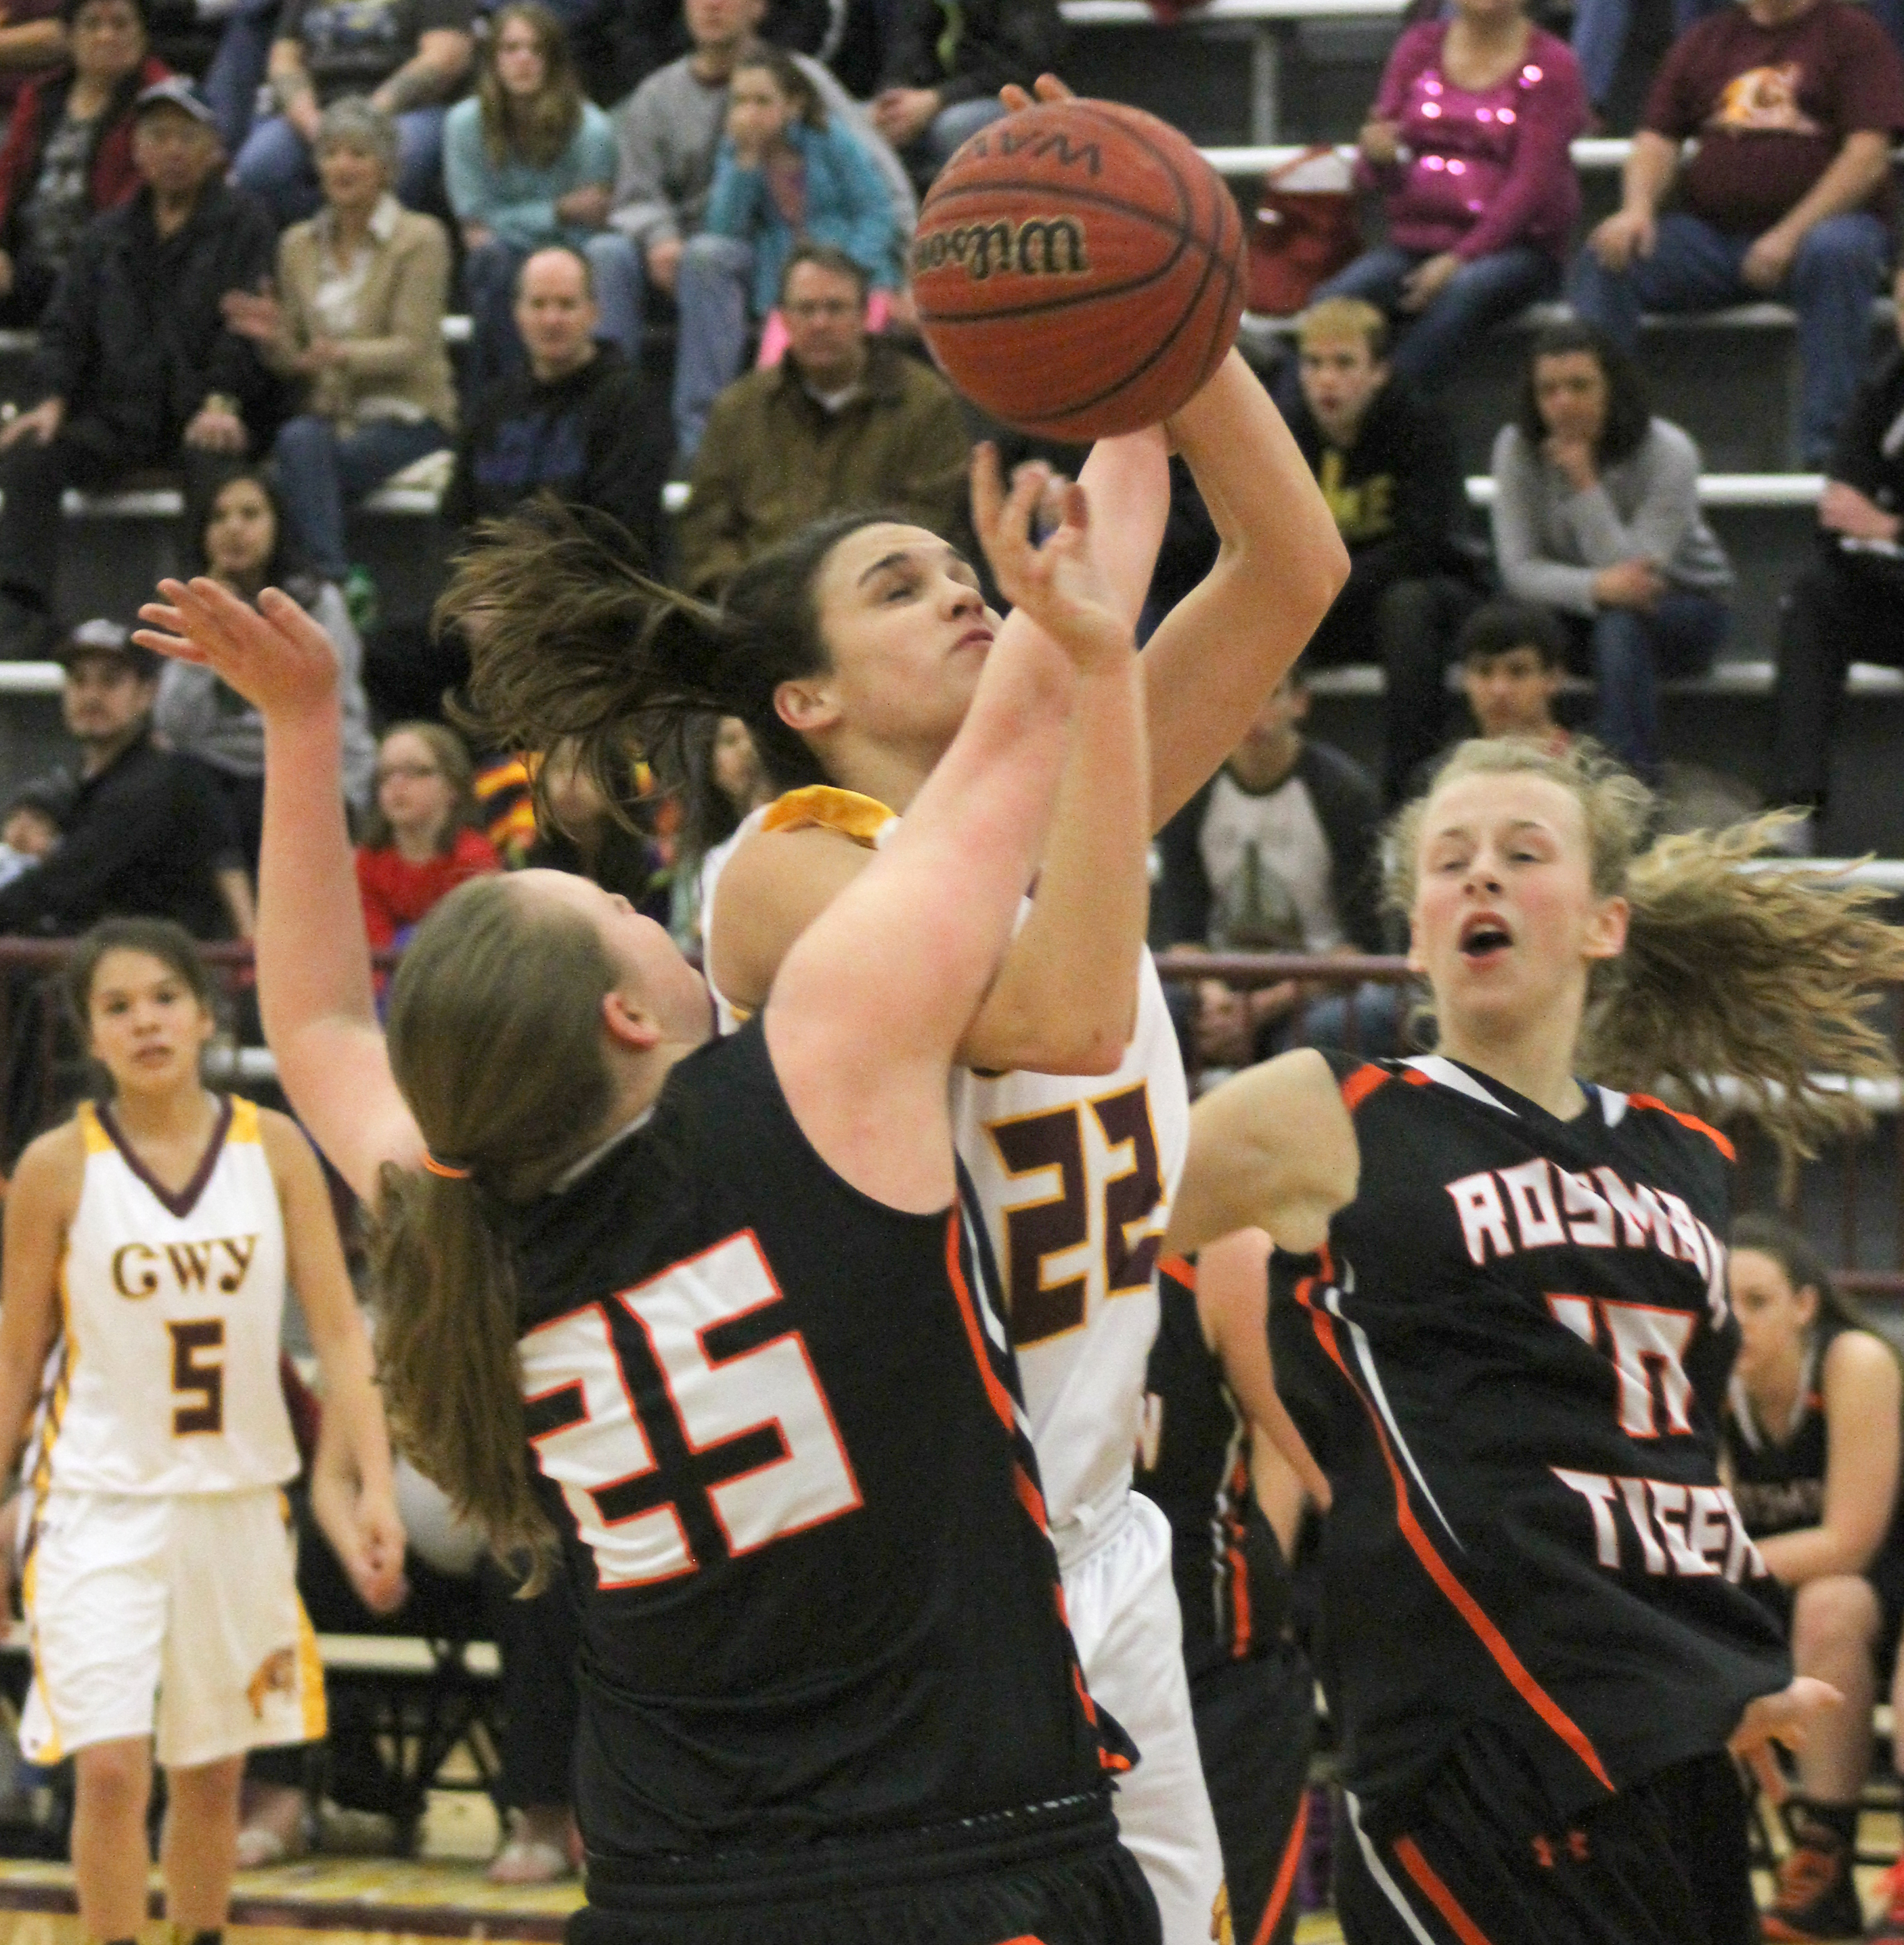 Avery Mintz (#22) takes a hard foul from Rosman's Rachel Owen (#25).  Mintz had 11pts and 5 steals for the game.